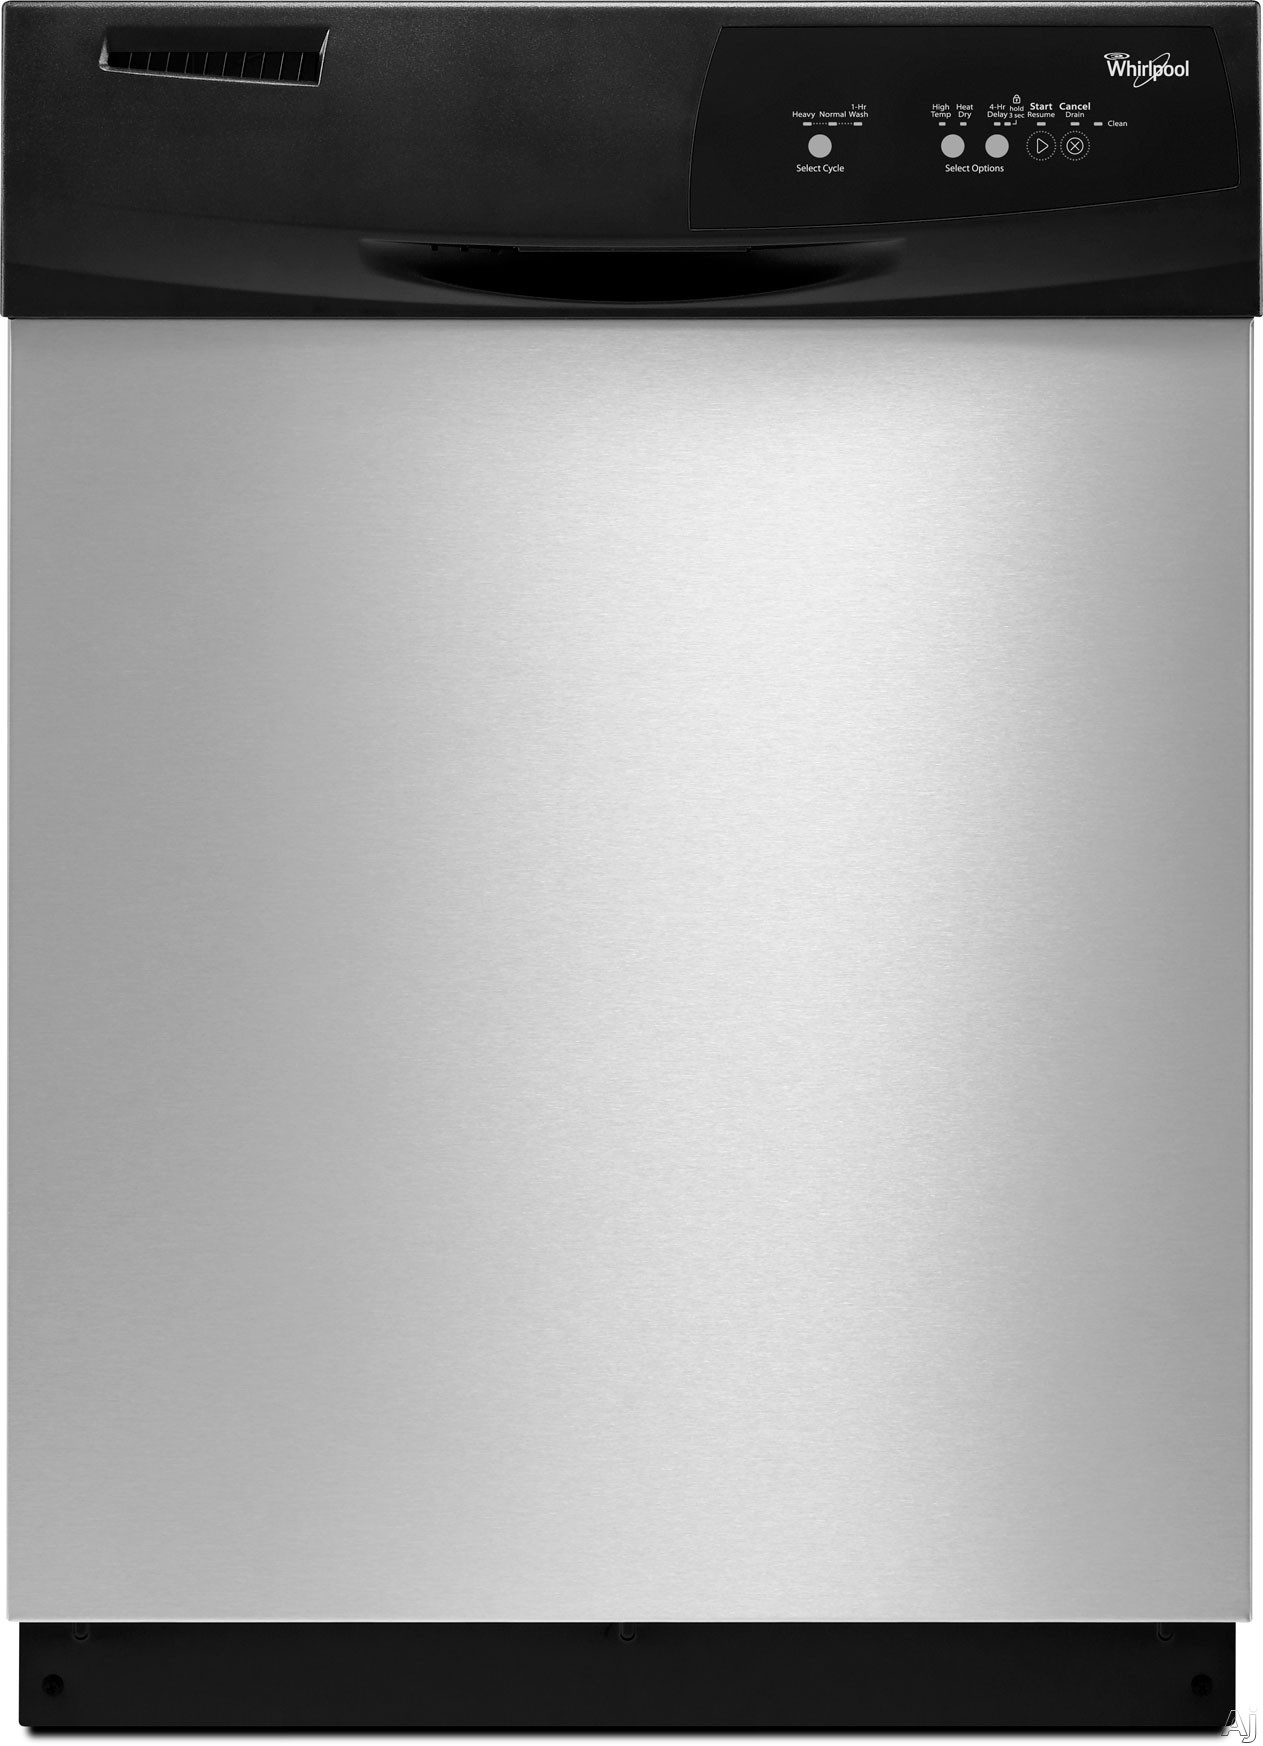 Low Prices Whirlpool Stainless Steel Built-In Dishwasher ...